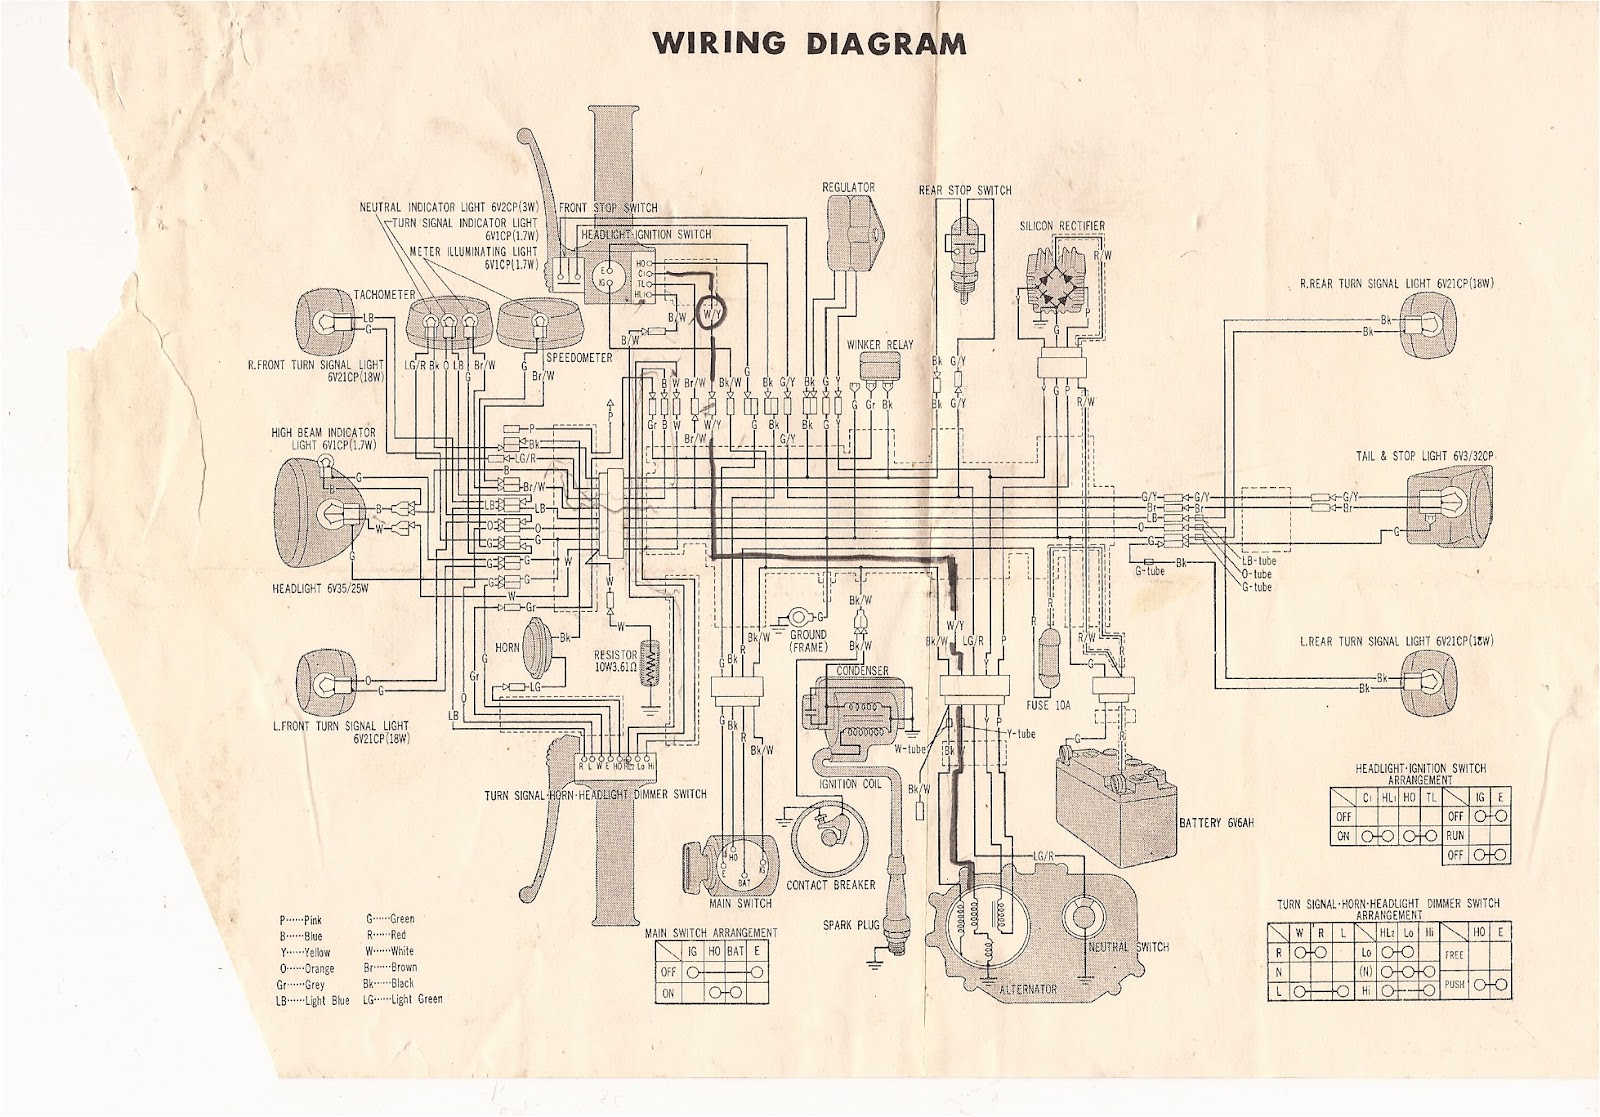 Wiring Diagram For A 1979 Yamaha Dt 125 Library Dt400 1975 Disposal Trane Air Handler